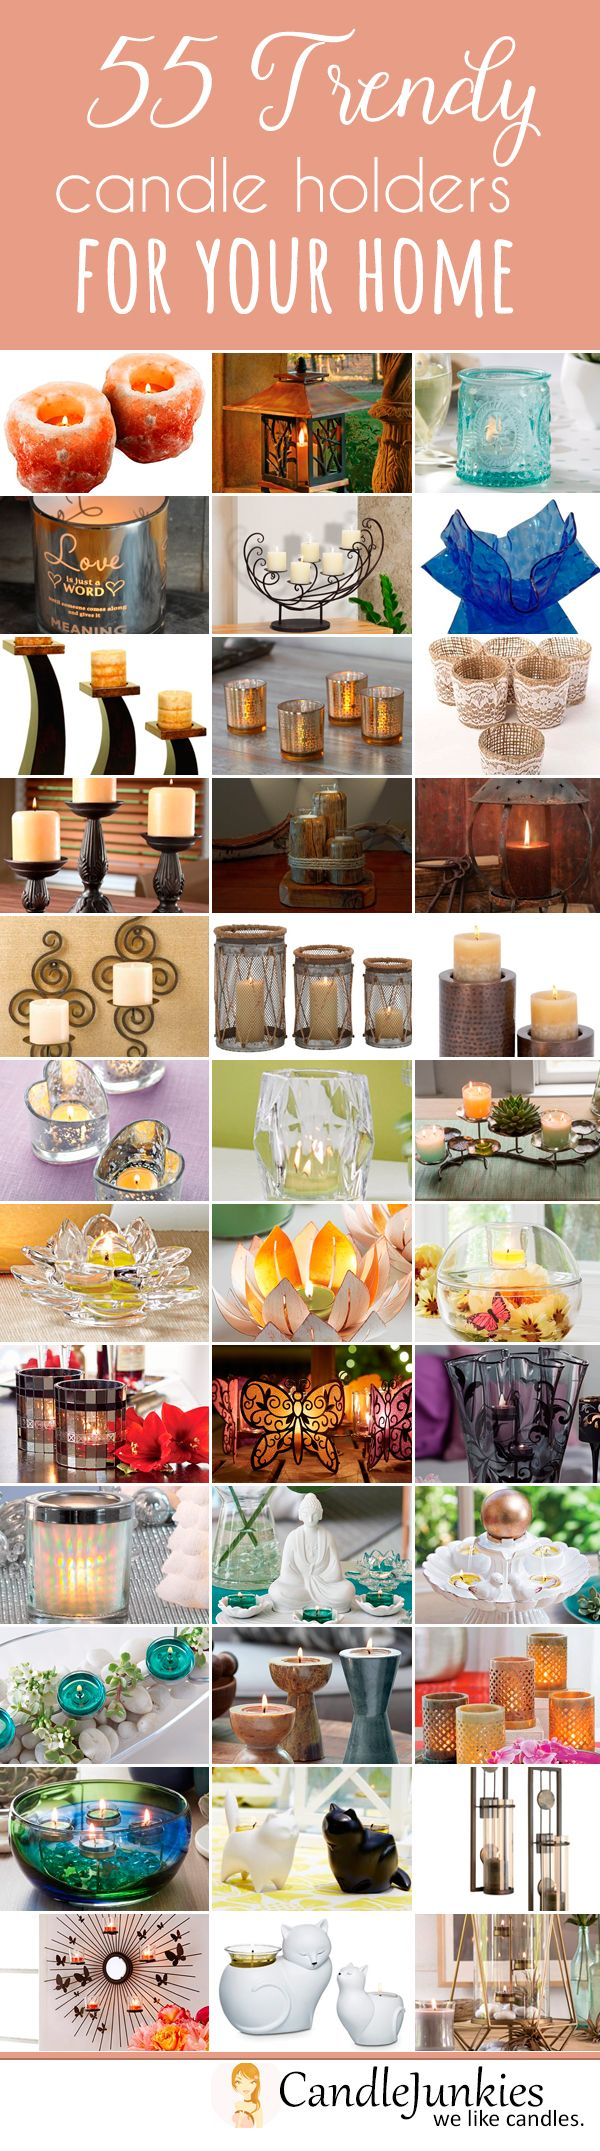 These 55 trendy candle holders can add those much needed final touches to your homes decor. #candleholders #candles #decor